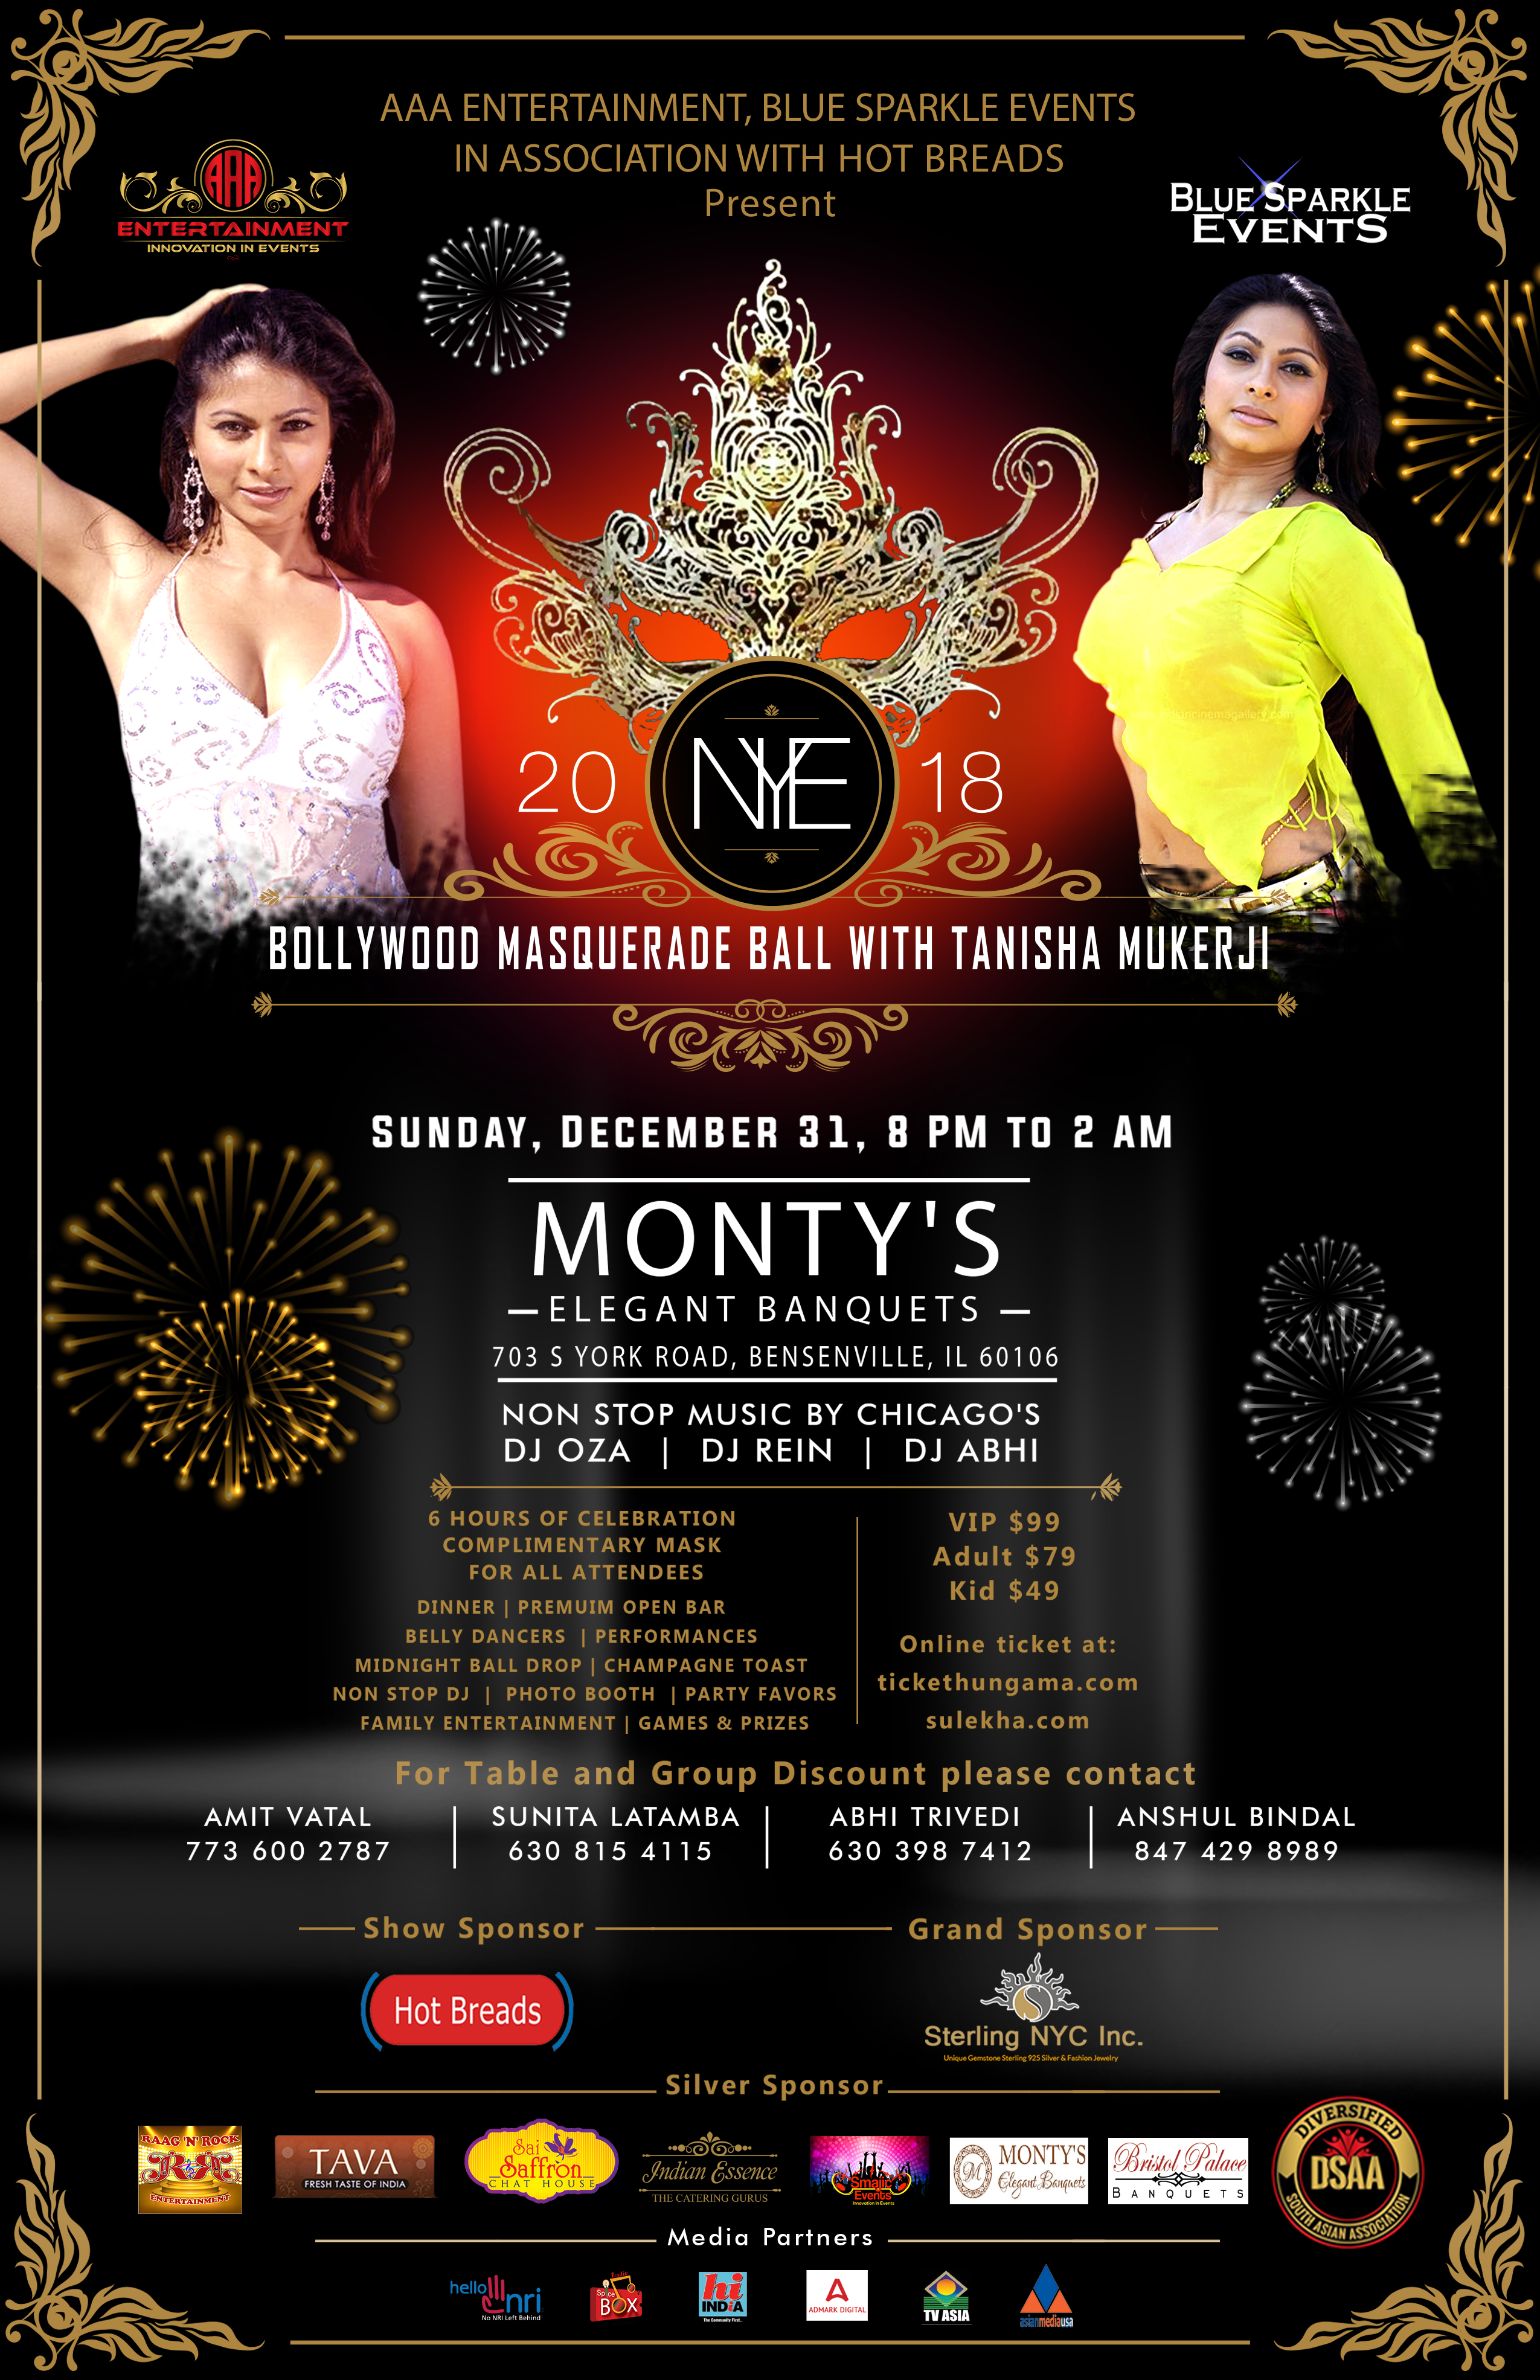 BOLLYWOOD MASQUERADE BALL WITH TANISHA MUKERJI